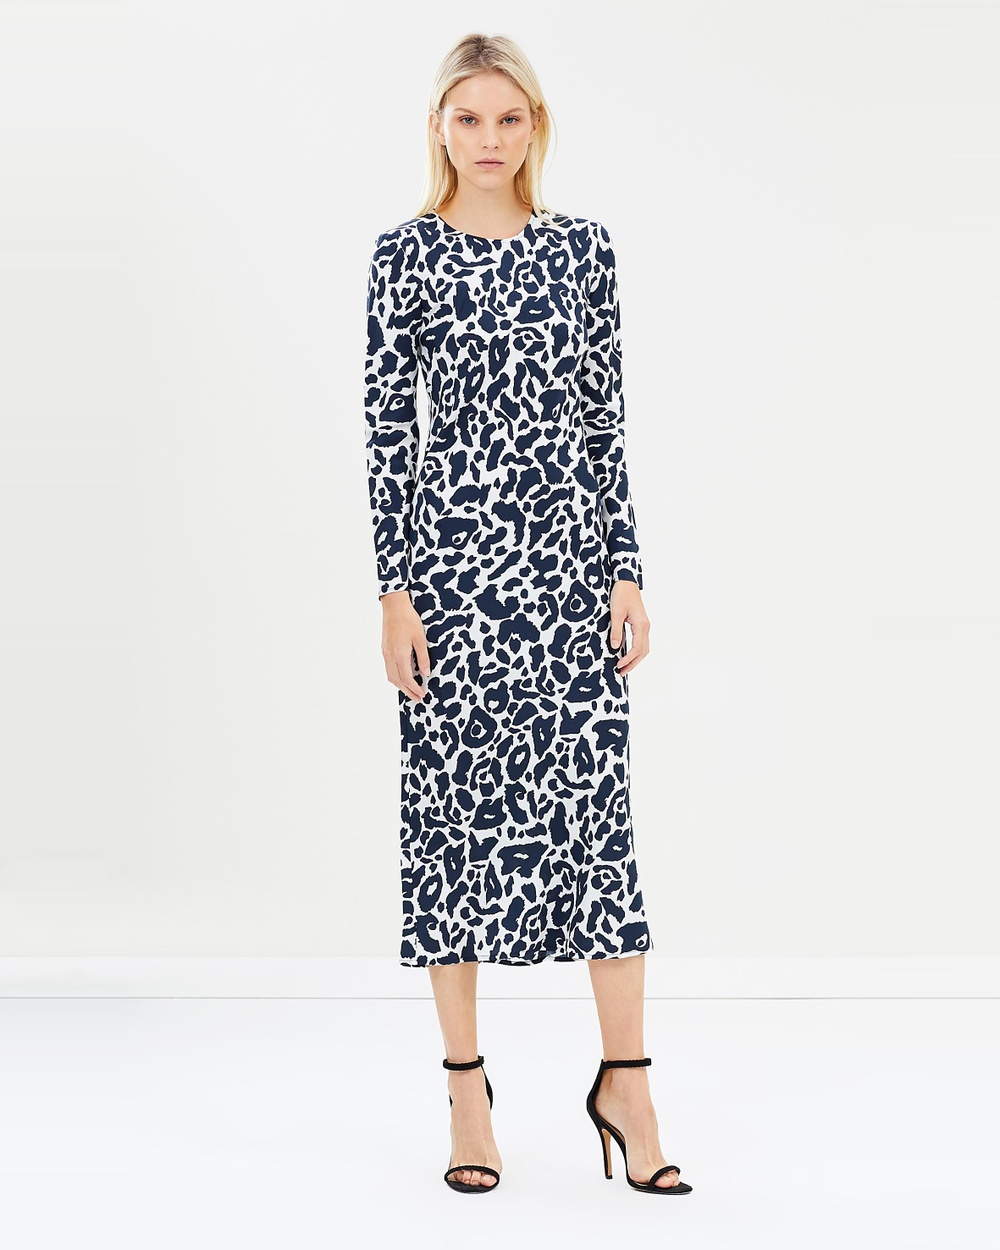 Gary Bigeni Foran Dress Printed Dresses Navy Leopard Print Foran Dress